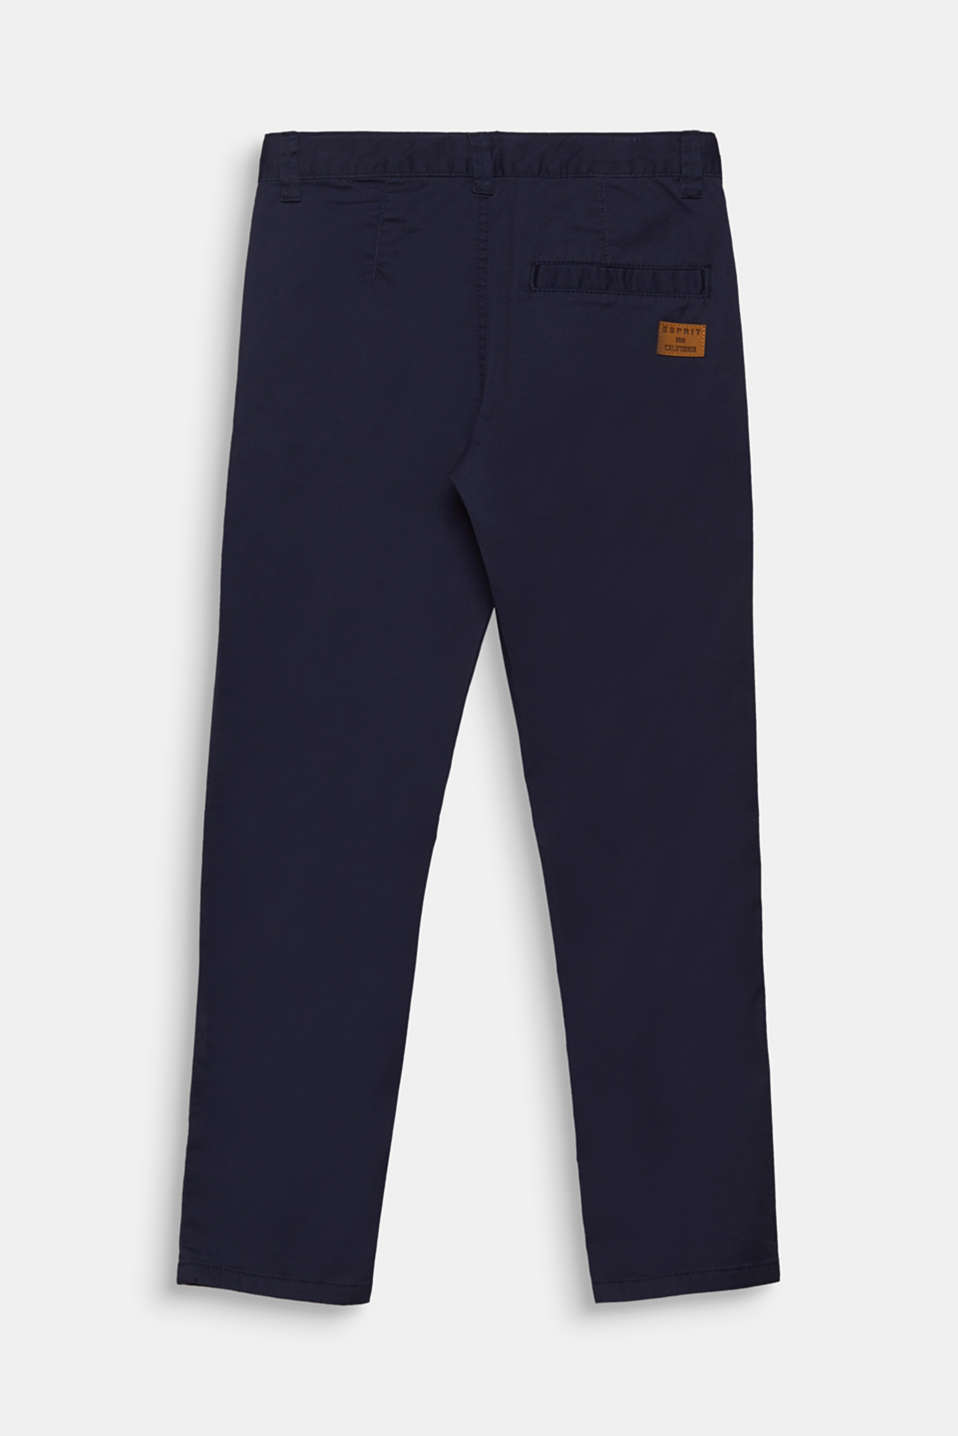 Stretch cotton trousers with an adjustable waistband, LCMIDNIGHT BLUE, detail image number 1